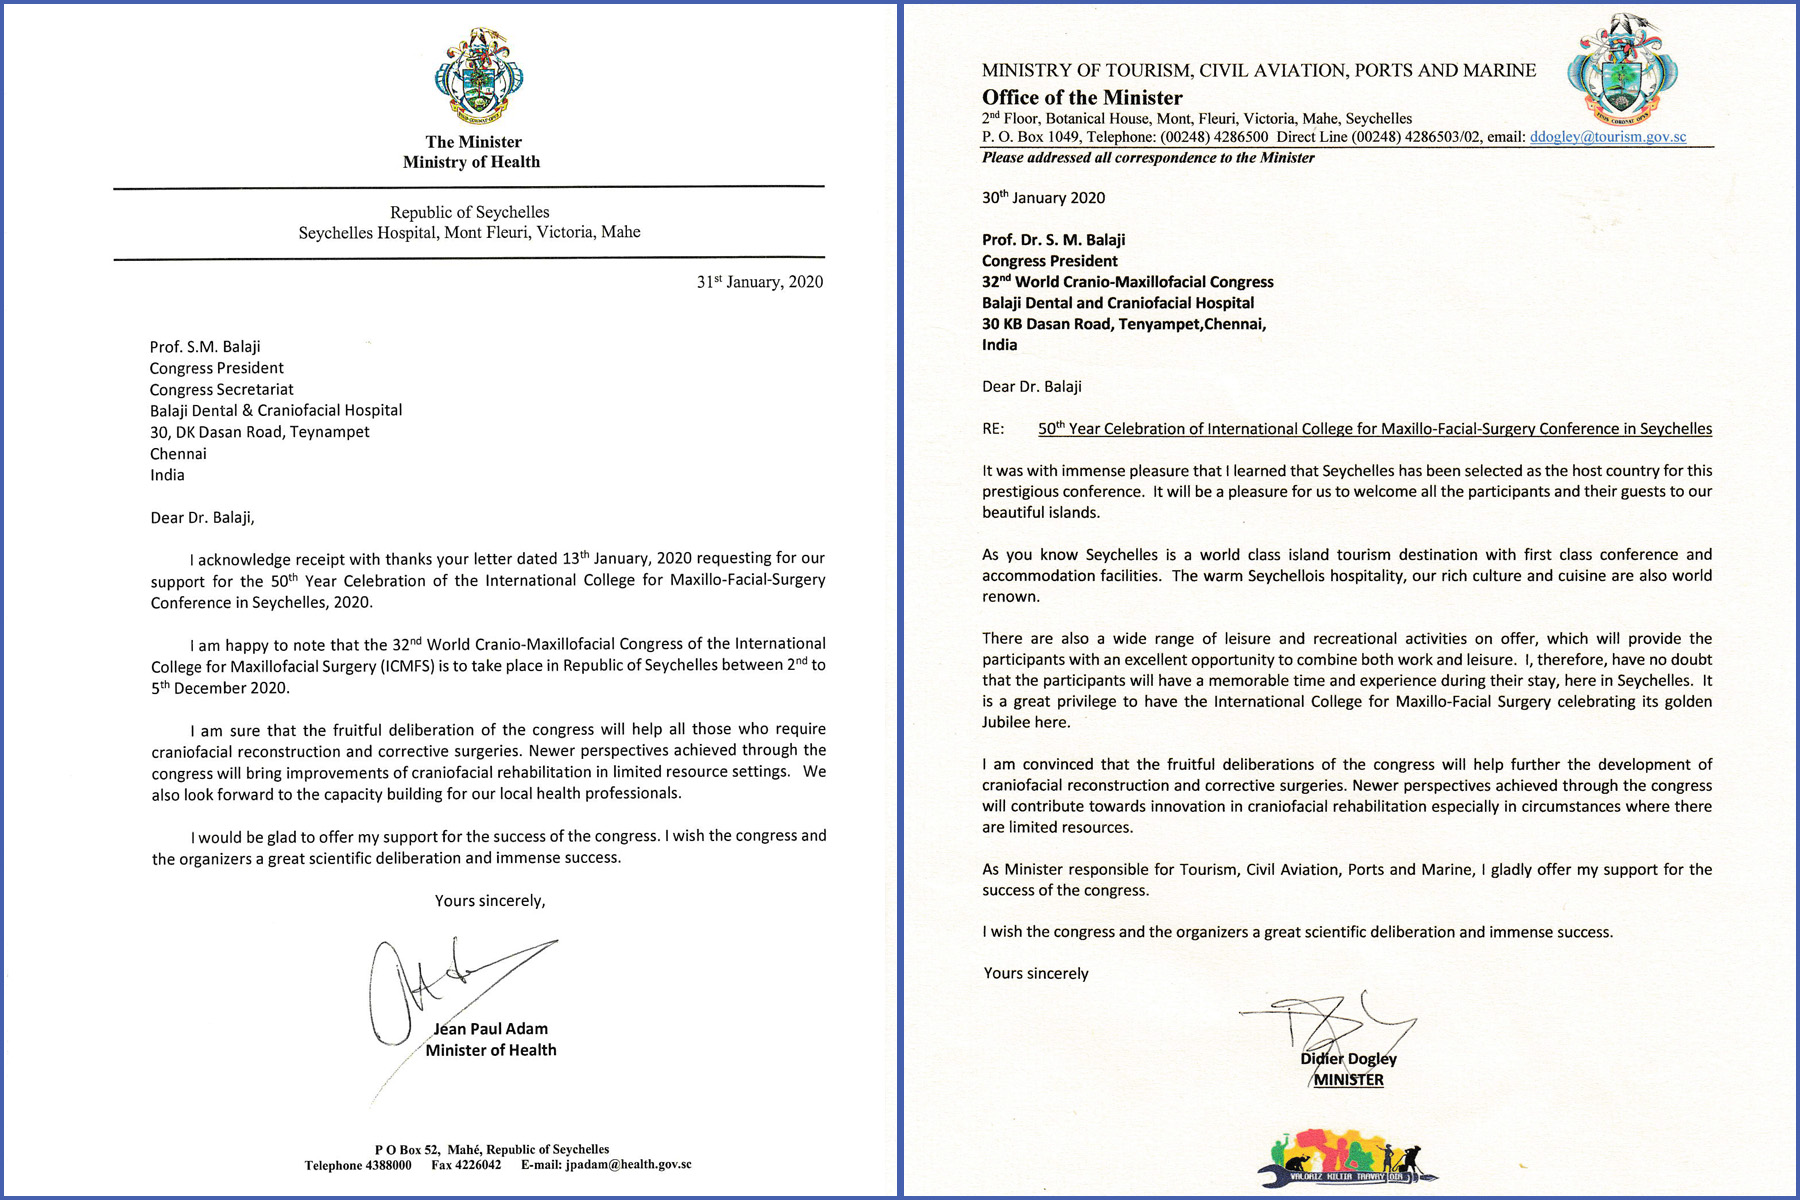 Letters of support for the Congress provided by the Hon'ble Ministers of the Republic of Seychelles